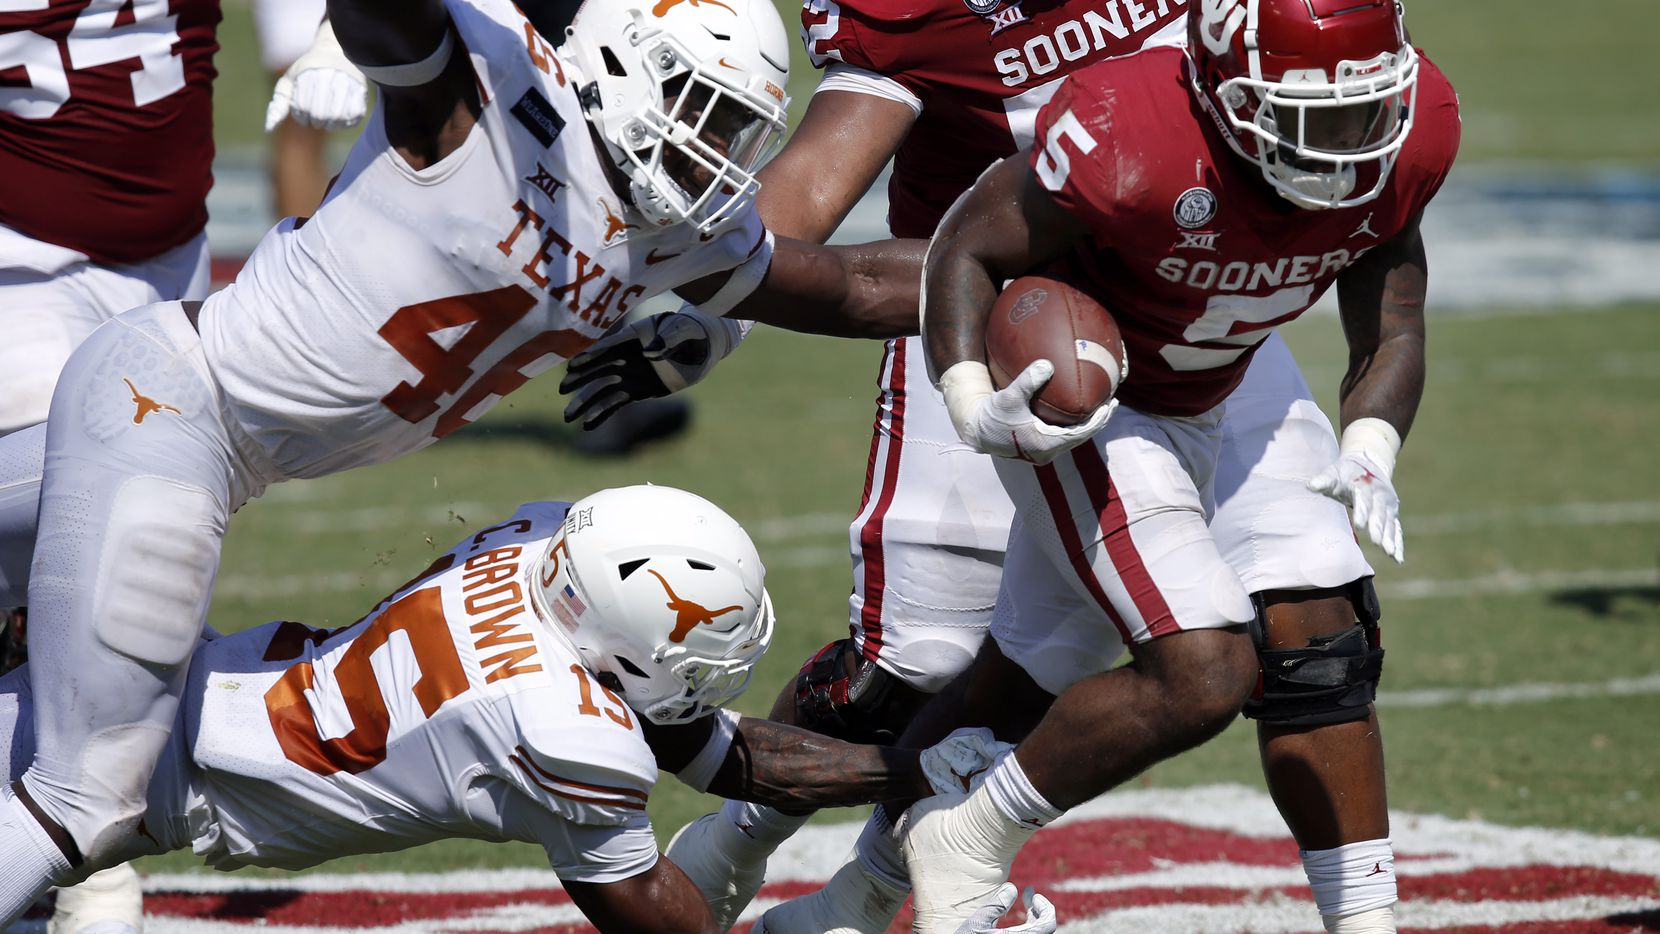 Texas Longhorns linebacker Joseph Ossai (46) and defensive back Chris Brown (15) combine to force a fumble by Oklahoma Sooners running back T.J. Pledger (5) during the second quarter of the Red River Rivalry at the Cotton Bowl in Dallas, Saturday, October 10, 2020. Oklahoma won in quadruple overtime, 53-45. (Tom Fox/The Dallas Morning News)